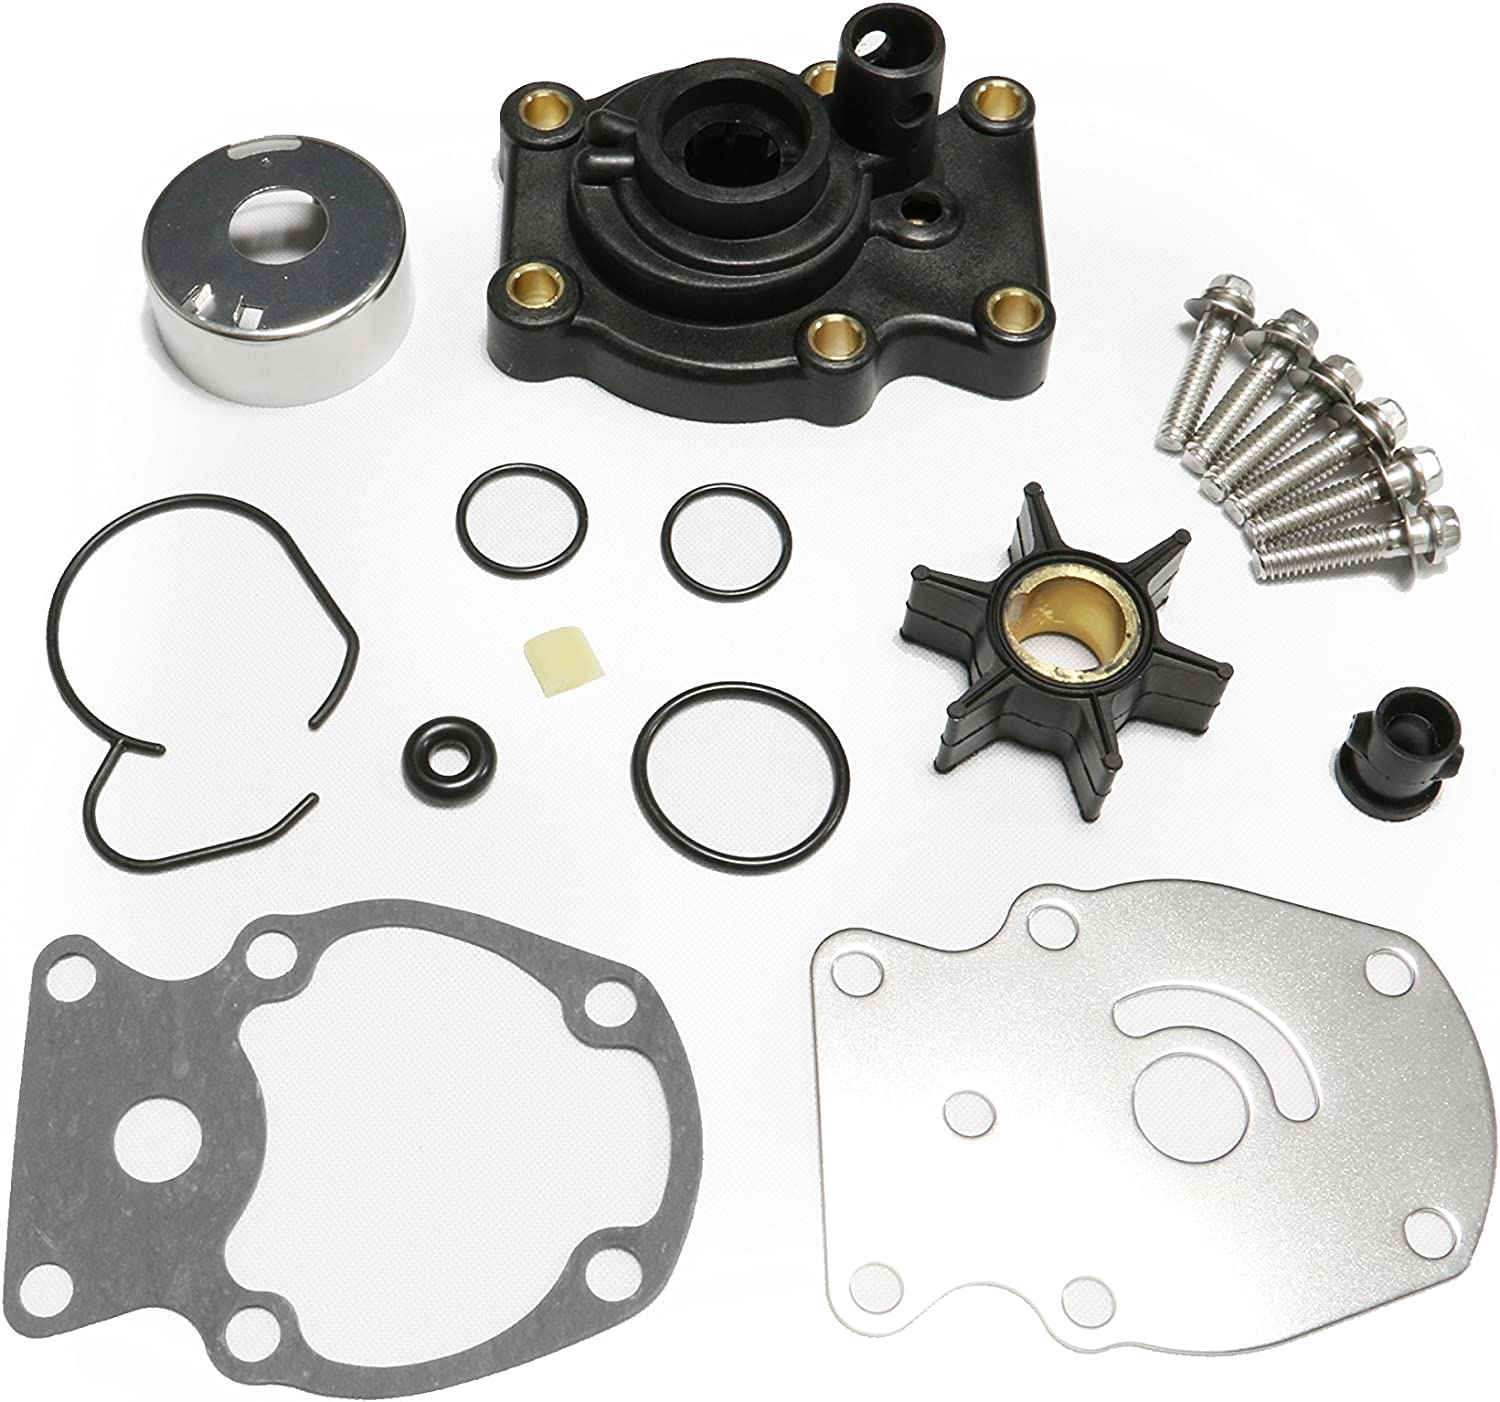 Full Power Plus Johnson Evinrude OMC Water Pump Kit with Housing Replacement (1980-UP) 20 25 30 35HP Sierra 18-3382 393630 0393630 Outboard Motor Parts